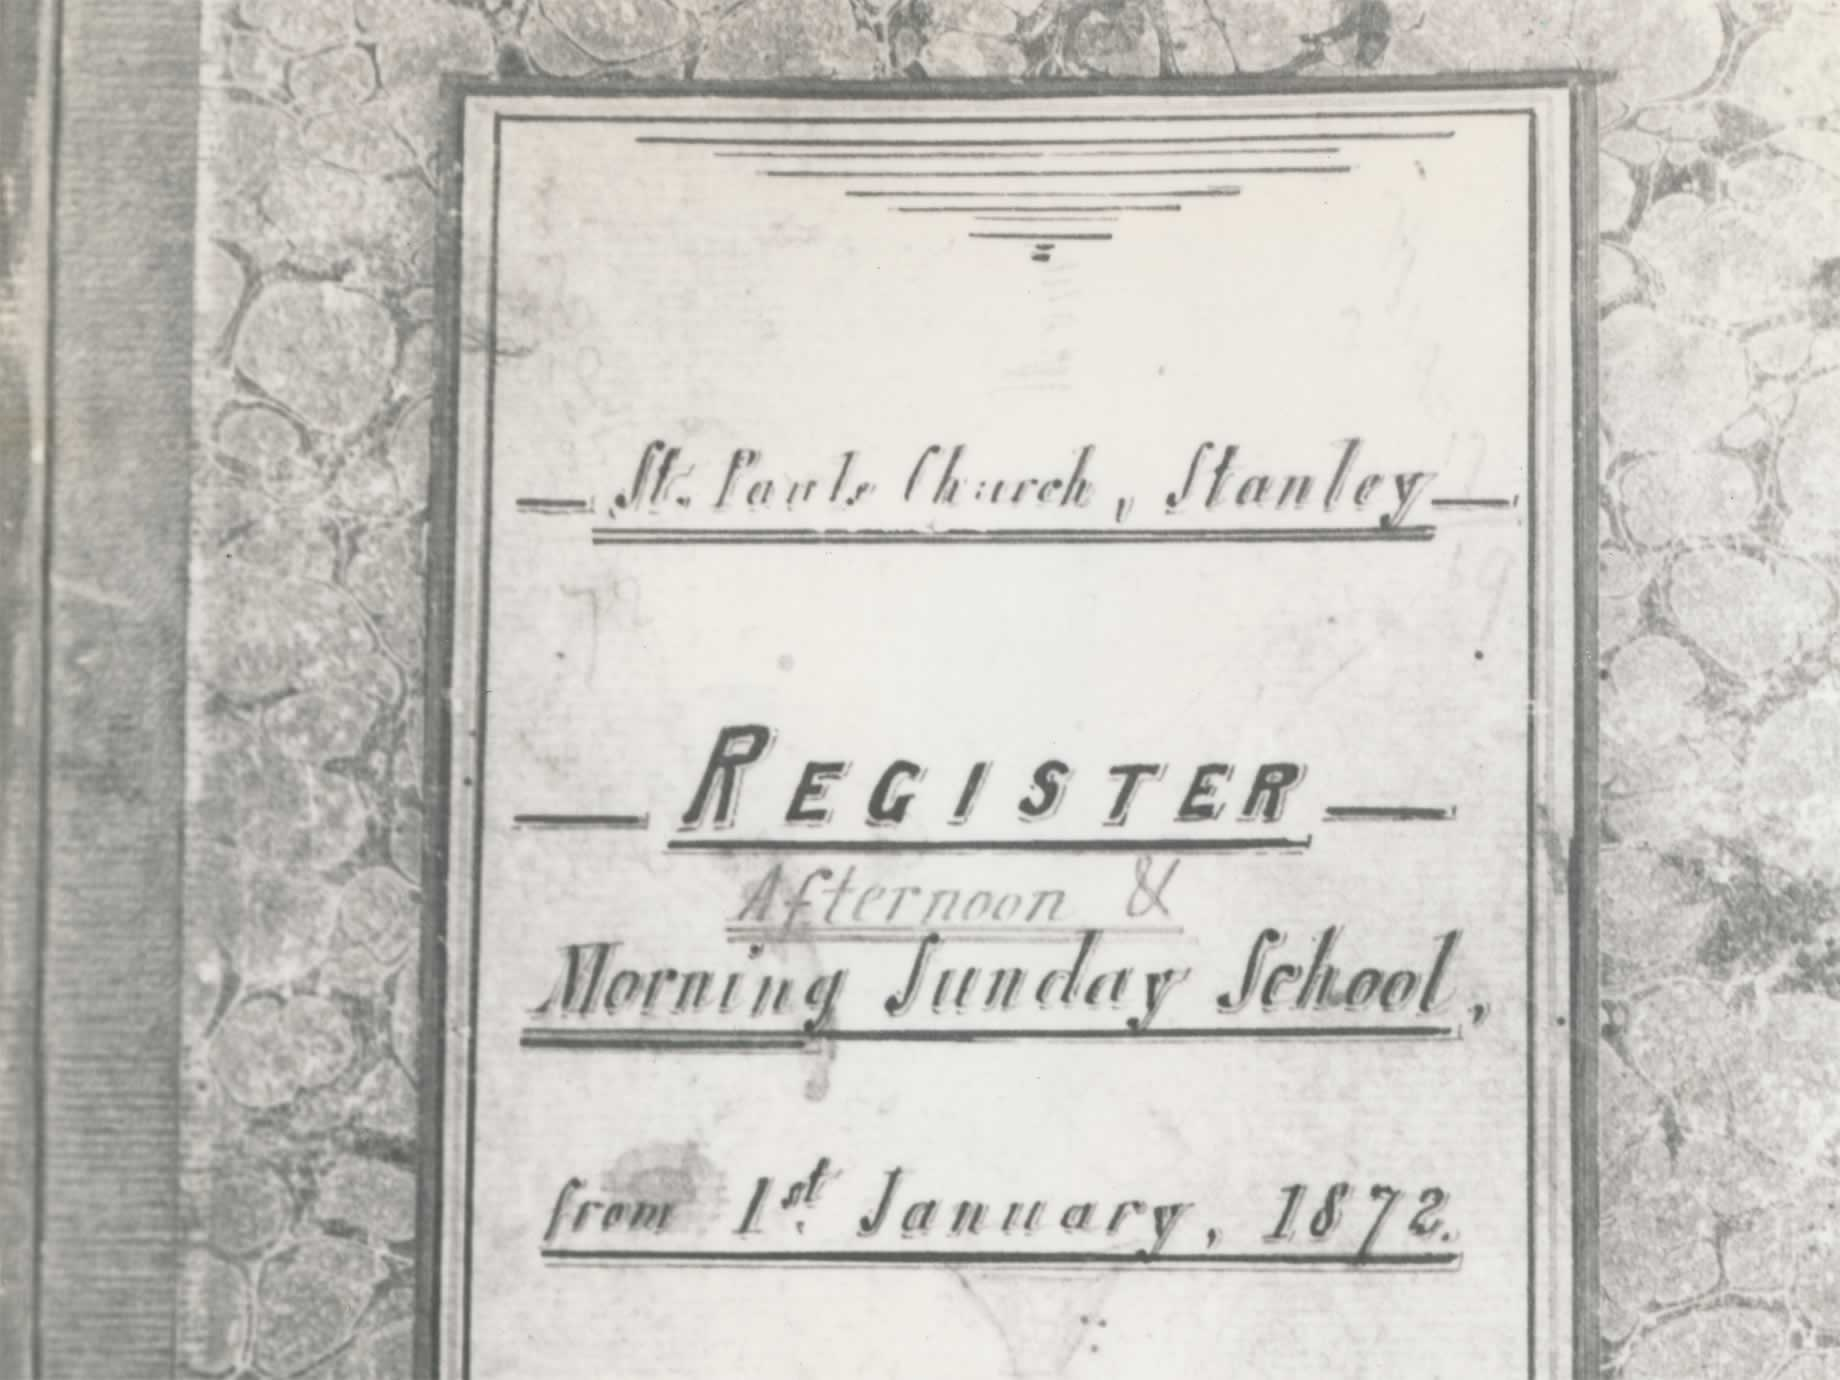 St Paul's register for Morning Sunday School, 1872